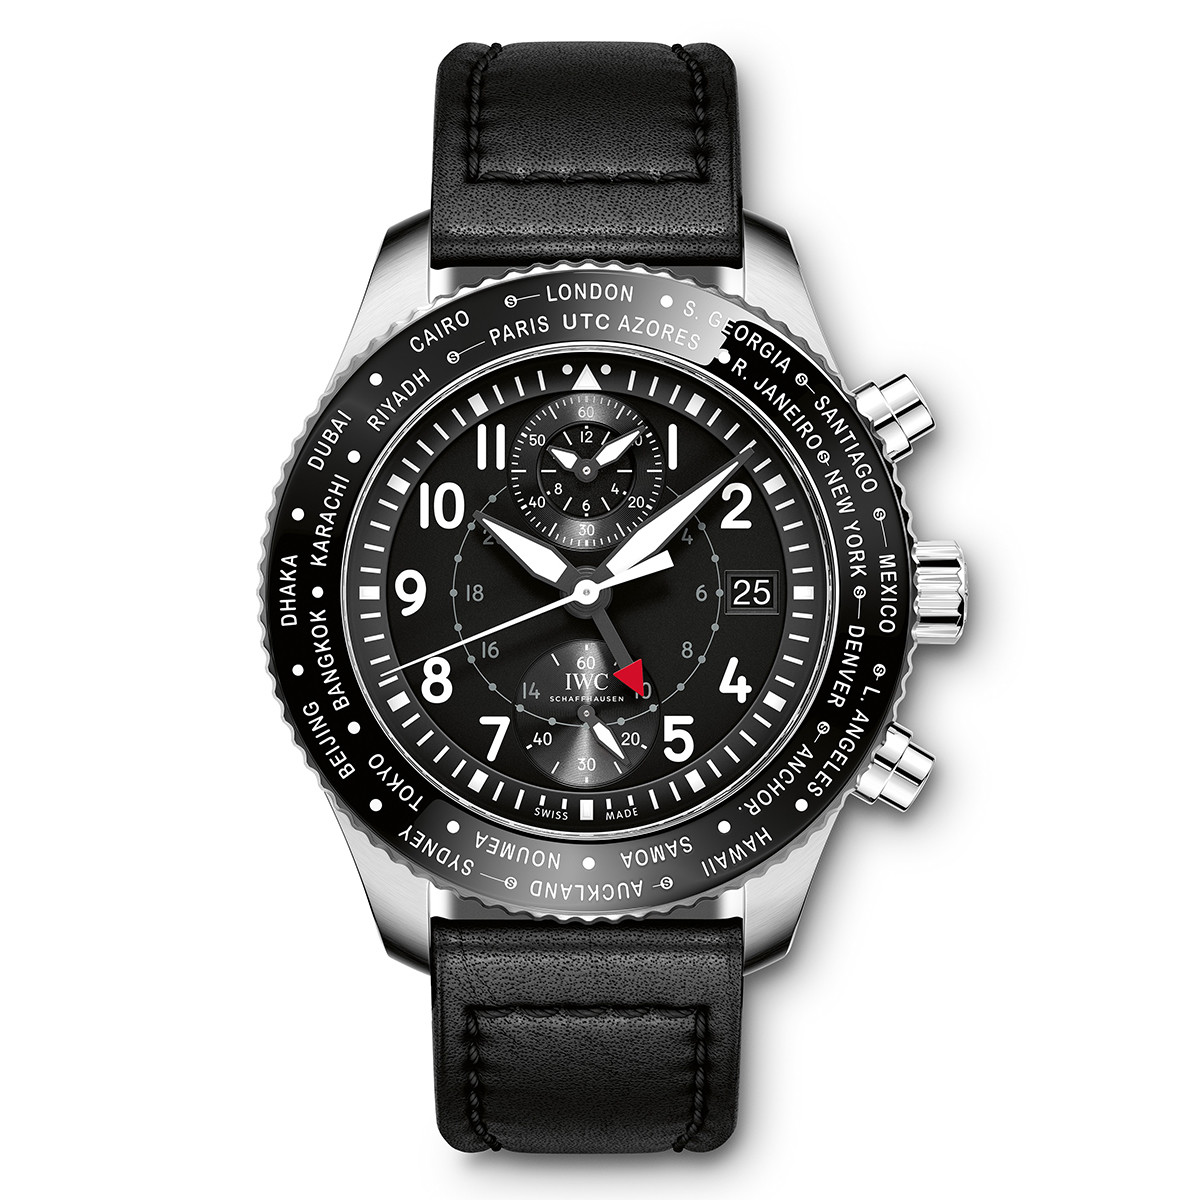 Pilot's Watch Timezoner Chronograph (IW395001)